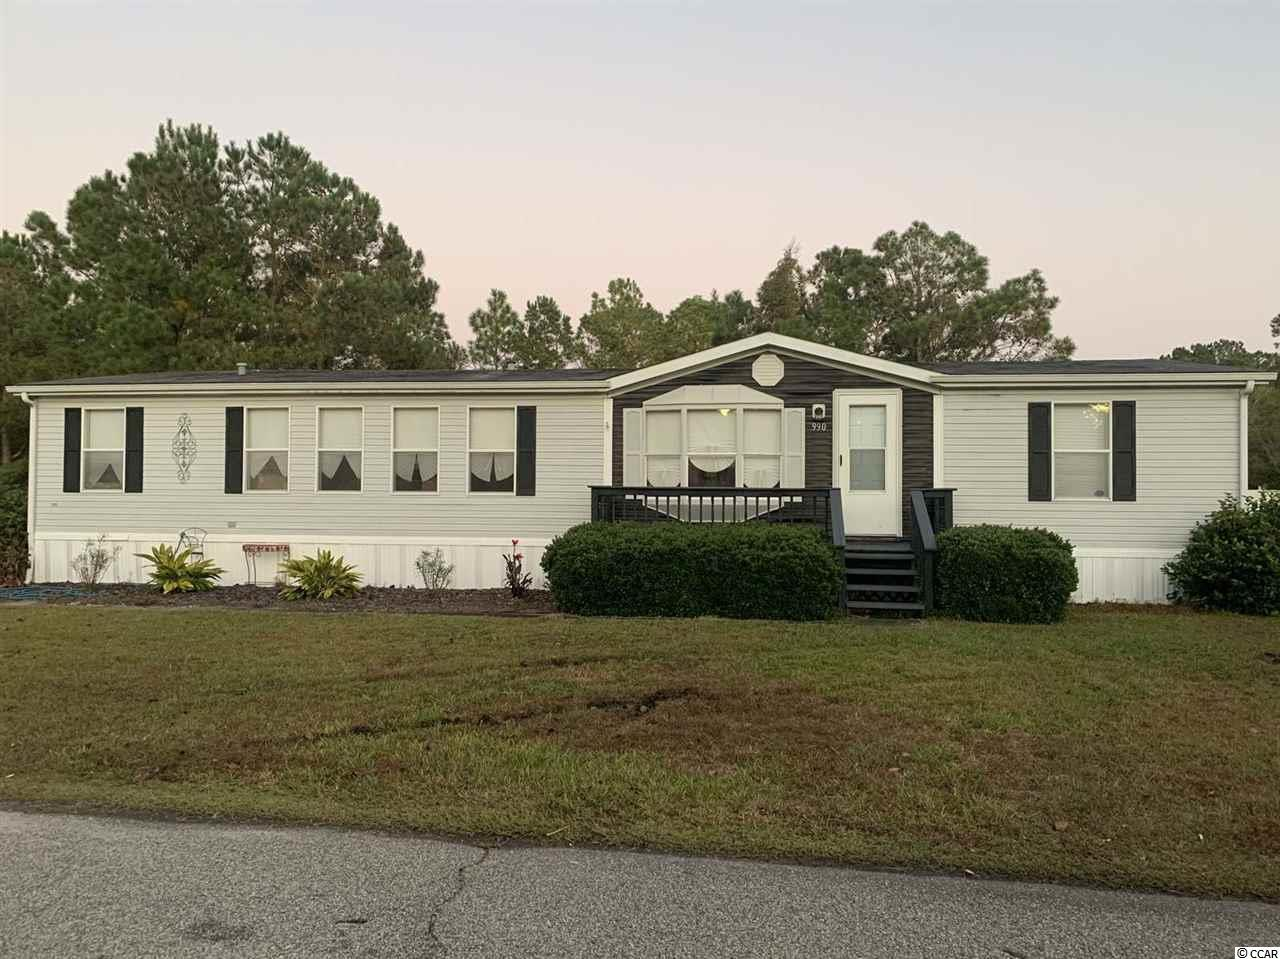 Absolutely gorgeous 3 bedroom 2 bath double wide manufactured home on a large corner lot with a private view off of the back deck. This popular community of Conway Plantation is just minutes away from beaches, waterways, local shopping and Carolina Forest High School. Interior is complete with a private laundry area that leads into a spacious kitchen with plenty of cabinet space for storage a beautiful large island with the ability to add breakfast seating on the other side. Off of the kitchen is a large living room complete with an elegant fireplace that leads to the back deck with a private view perfect for quiet mornings. Off of the rear deck is a bonus room that can be used for multi-purposes, this incredible bonus space is sound proof and set up with different lighting options. Home is also complete with two very spacious bedrooms that share a full bathroom as well as a large master bedroom with a walk in closet and very spacious master bathroom that is complete with a large soaking tub. The rear of the home also contains 2 storage sheds for all of your additional storage needs! Don't miss this beauty it won't last long at this price!!